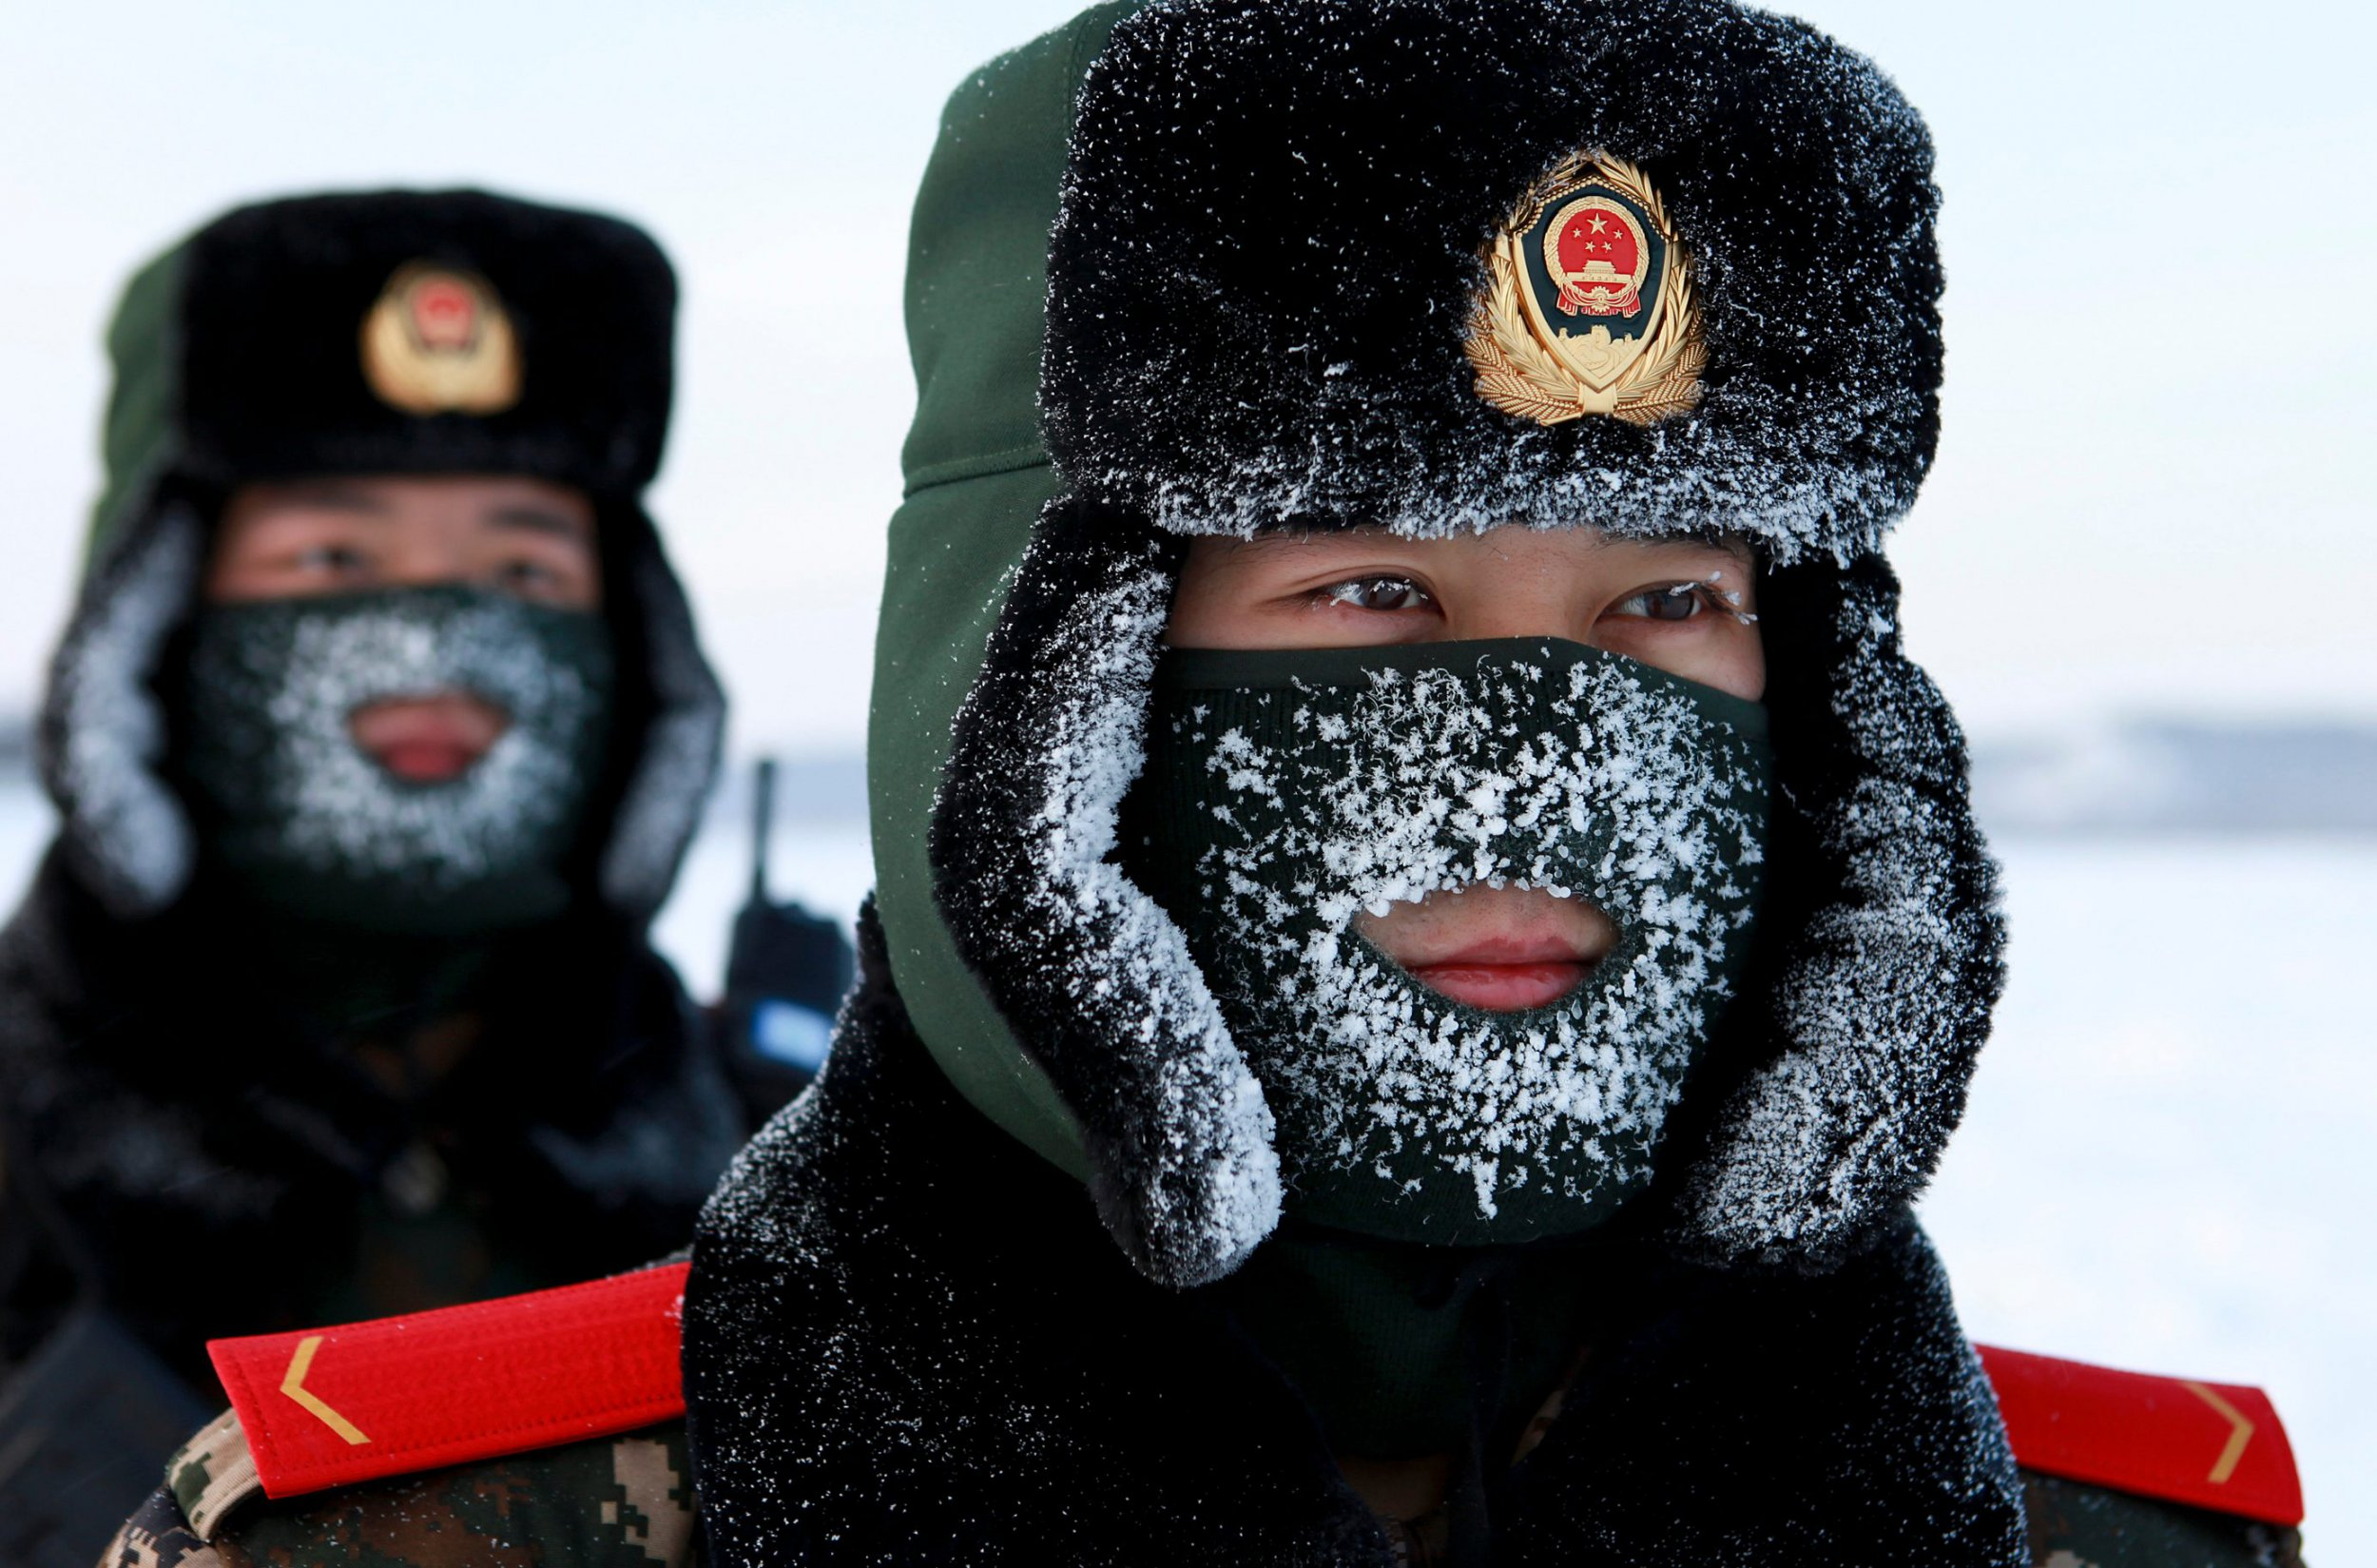 Chinese paramilitary police border guards train in the snow at the northernmost, subarctic point of China's Heilongjiang province, on the border with Russia.